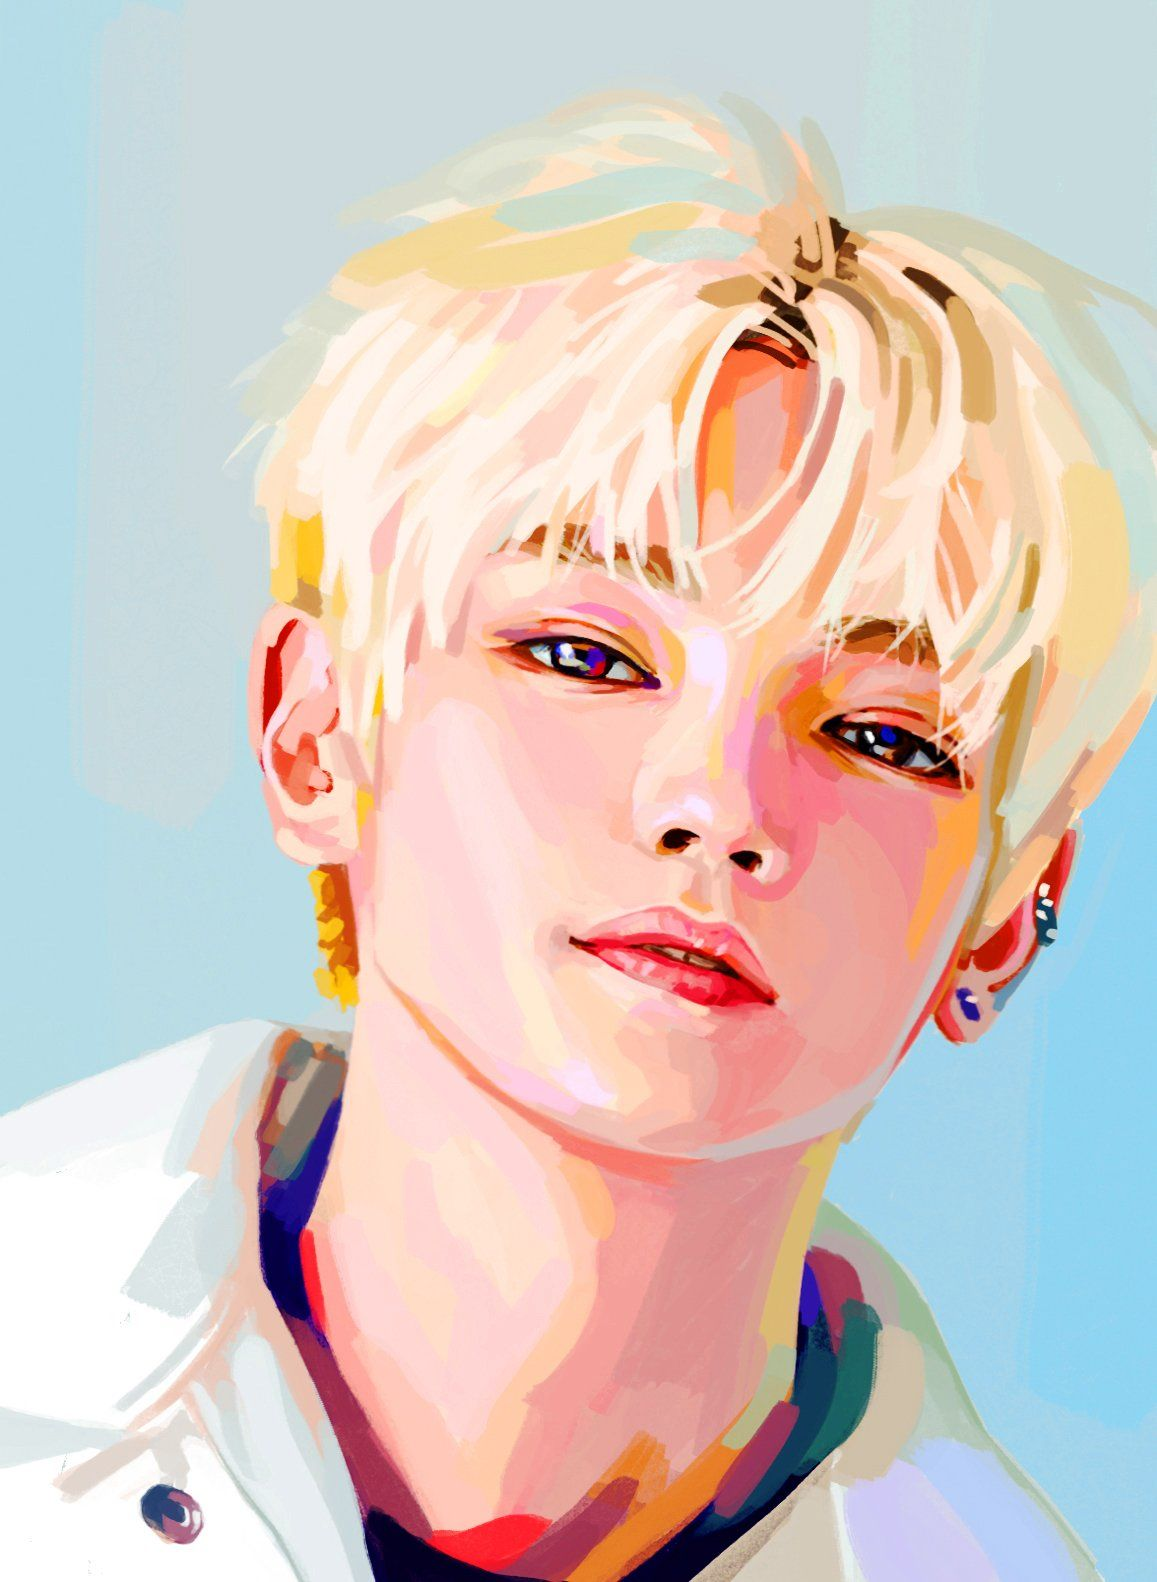 Ꮯ on in 2019 | TY/NCT | Nct taeyong, Nct, Kpop fanart